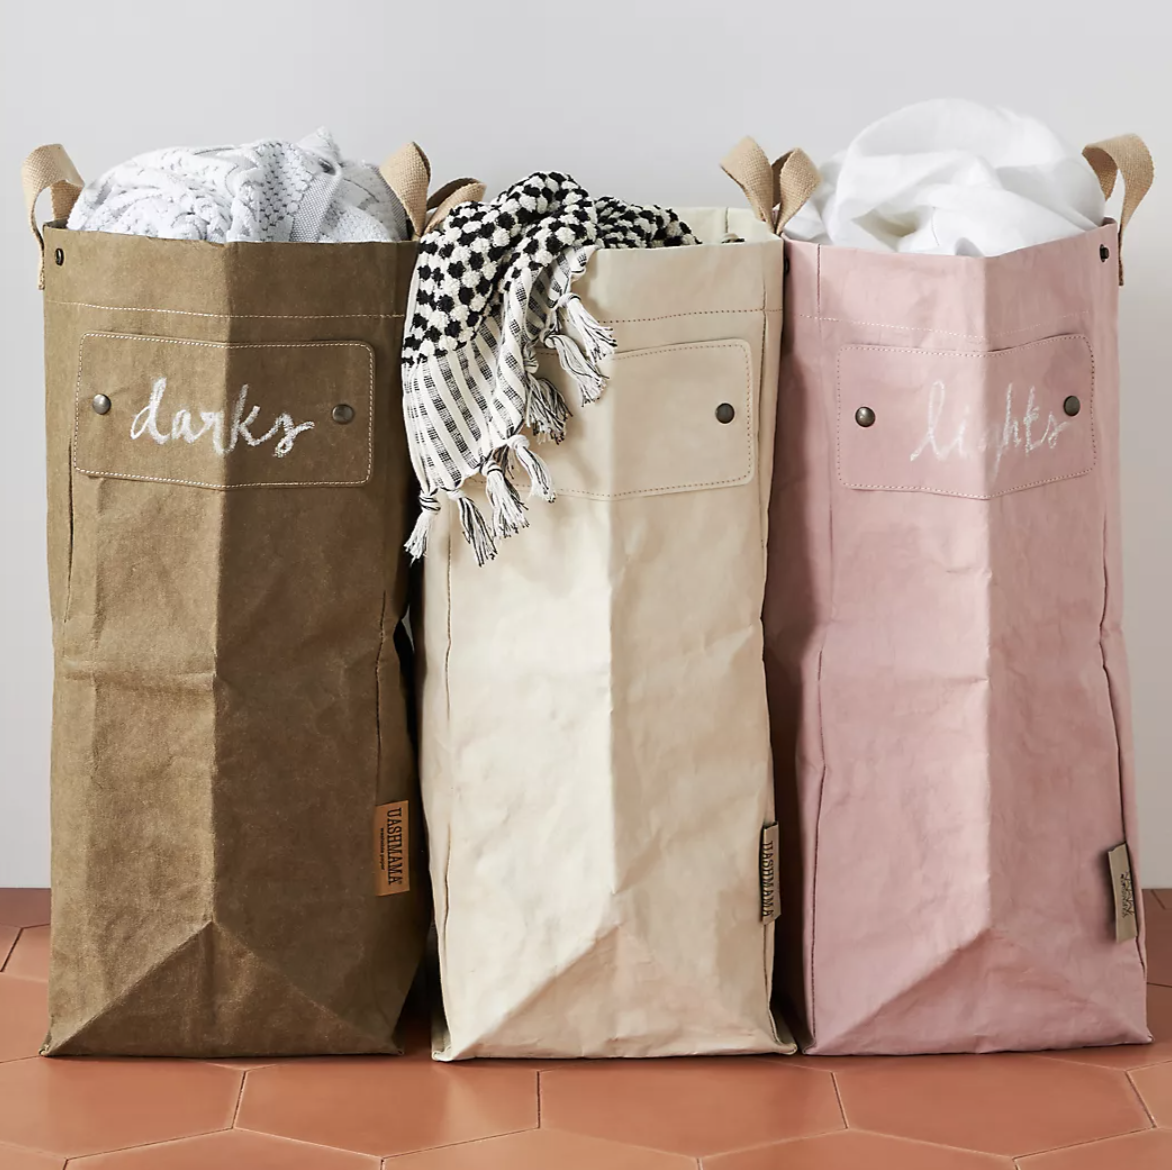 Amalfi Laundry Bag Hamper